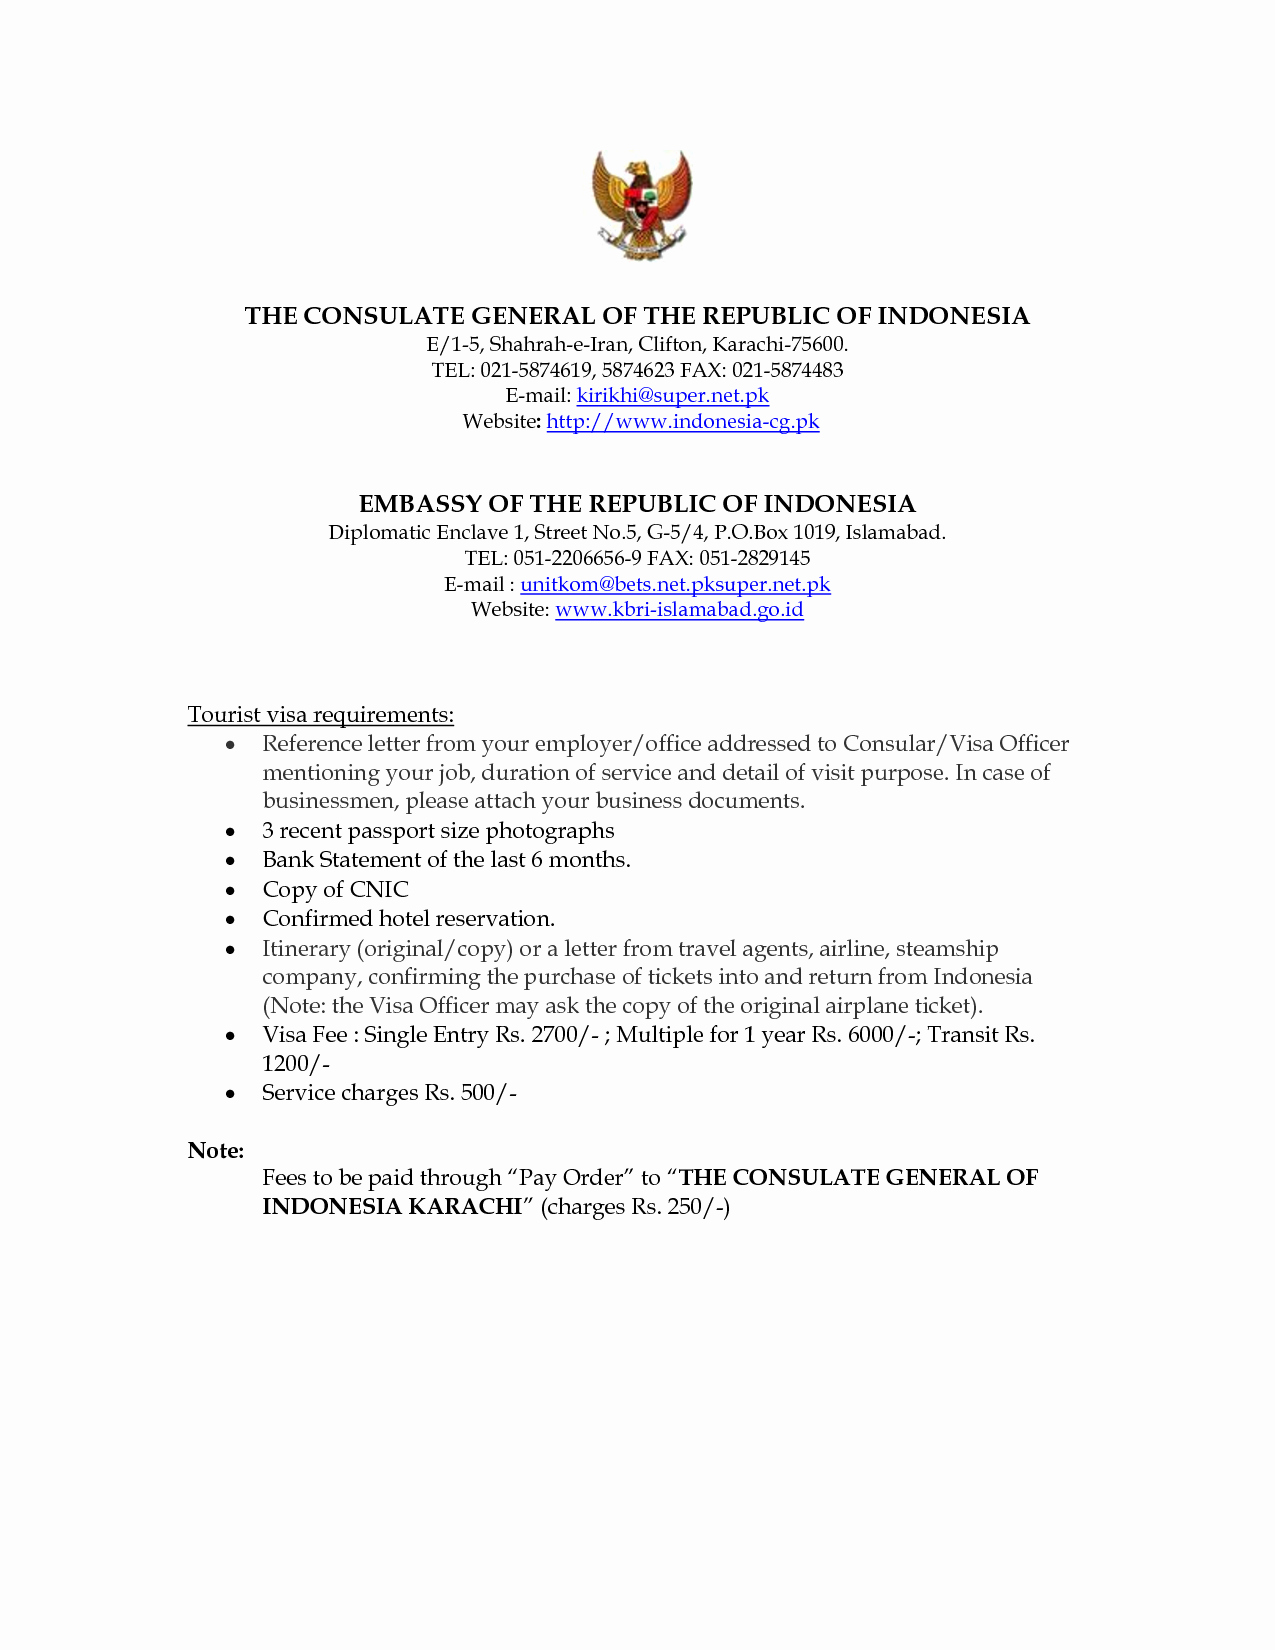 Letter Of Guarantee Sample Lovely Resume Financial Guarantee Letter for Visa format Template